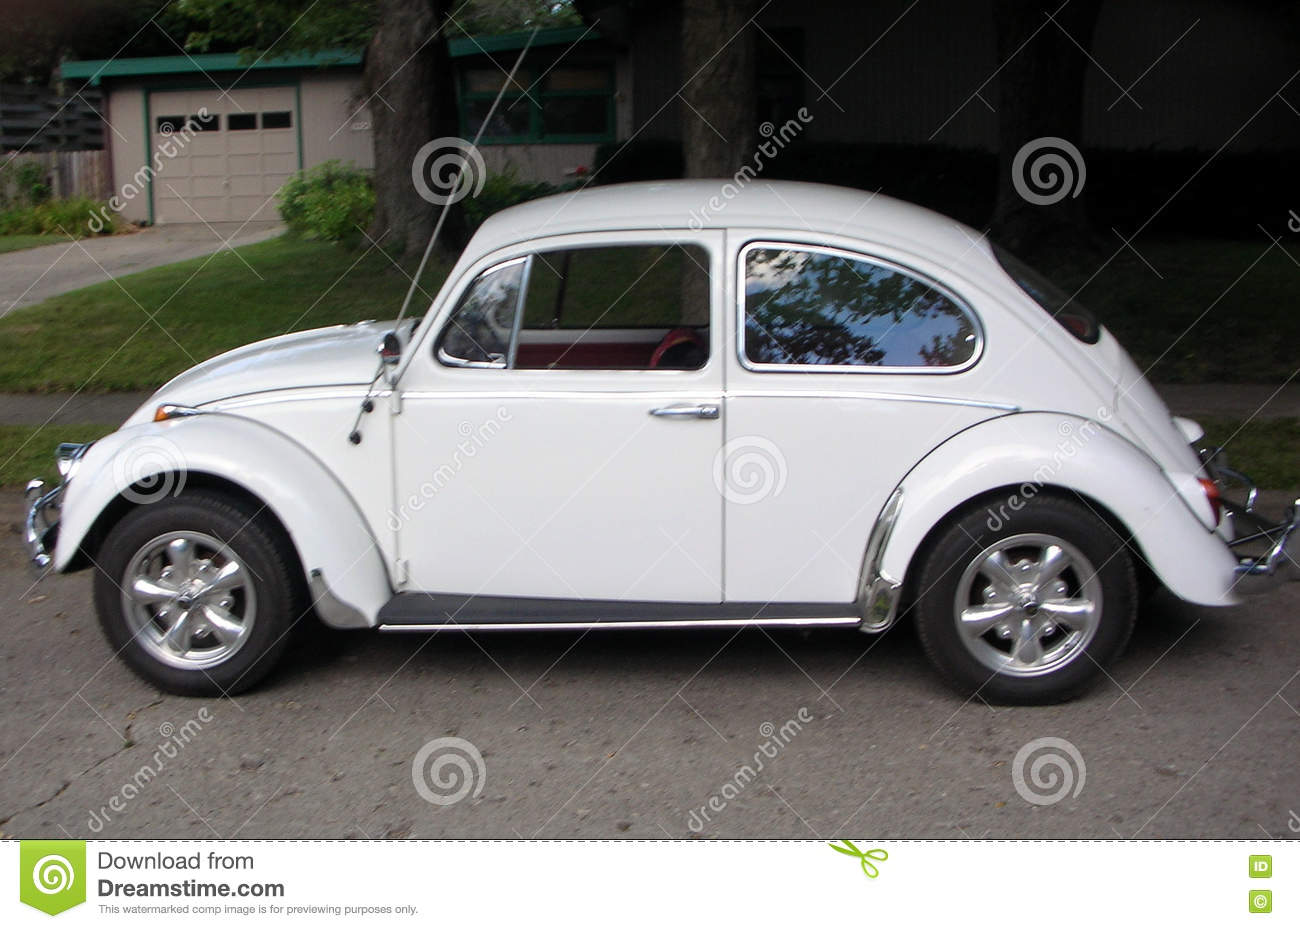 288 Volkswagen Beetle Classic Isolated Photos Free Royalty Free Stock Photos From Dreamstime